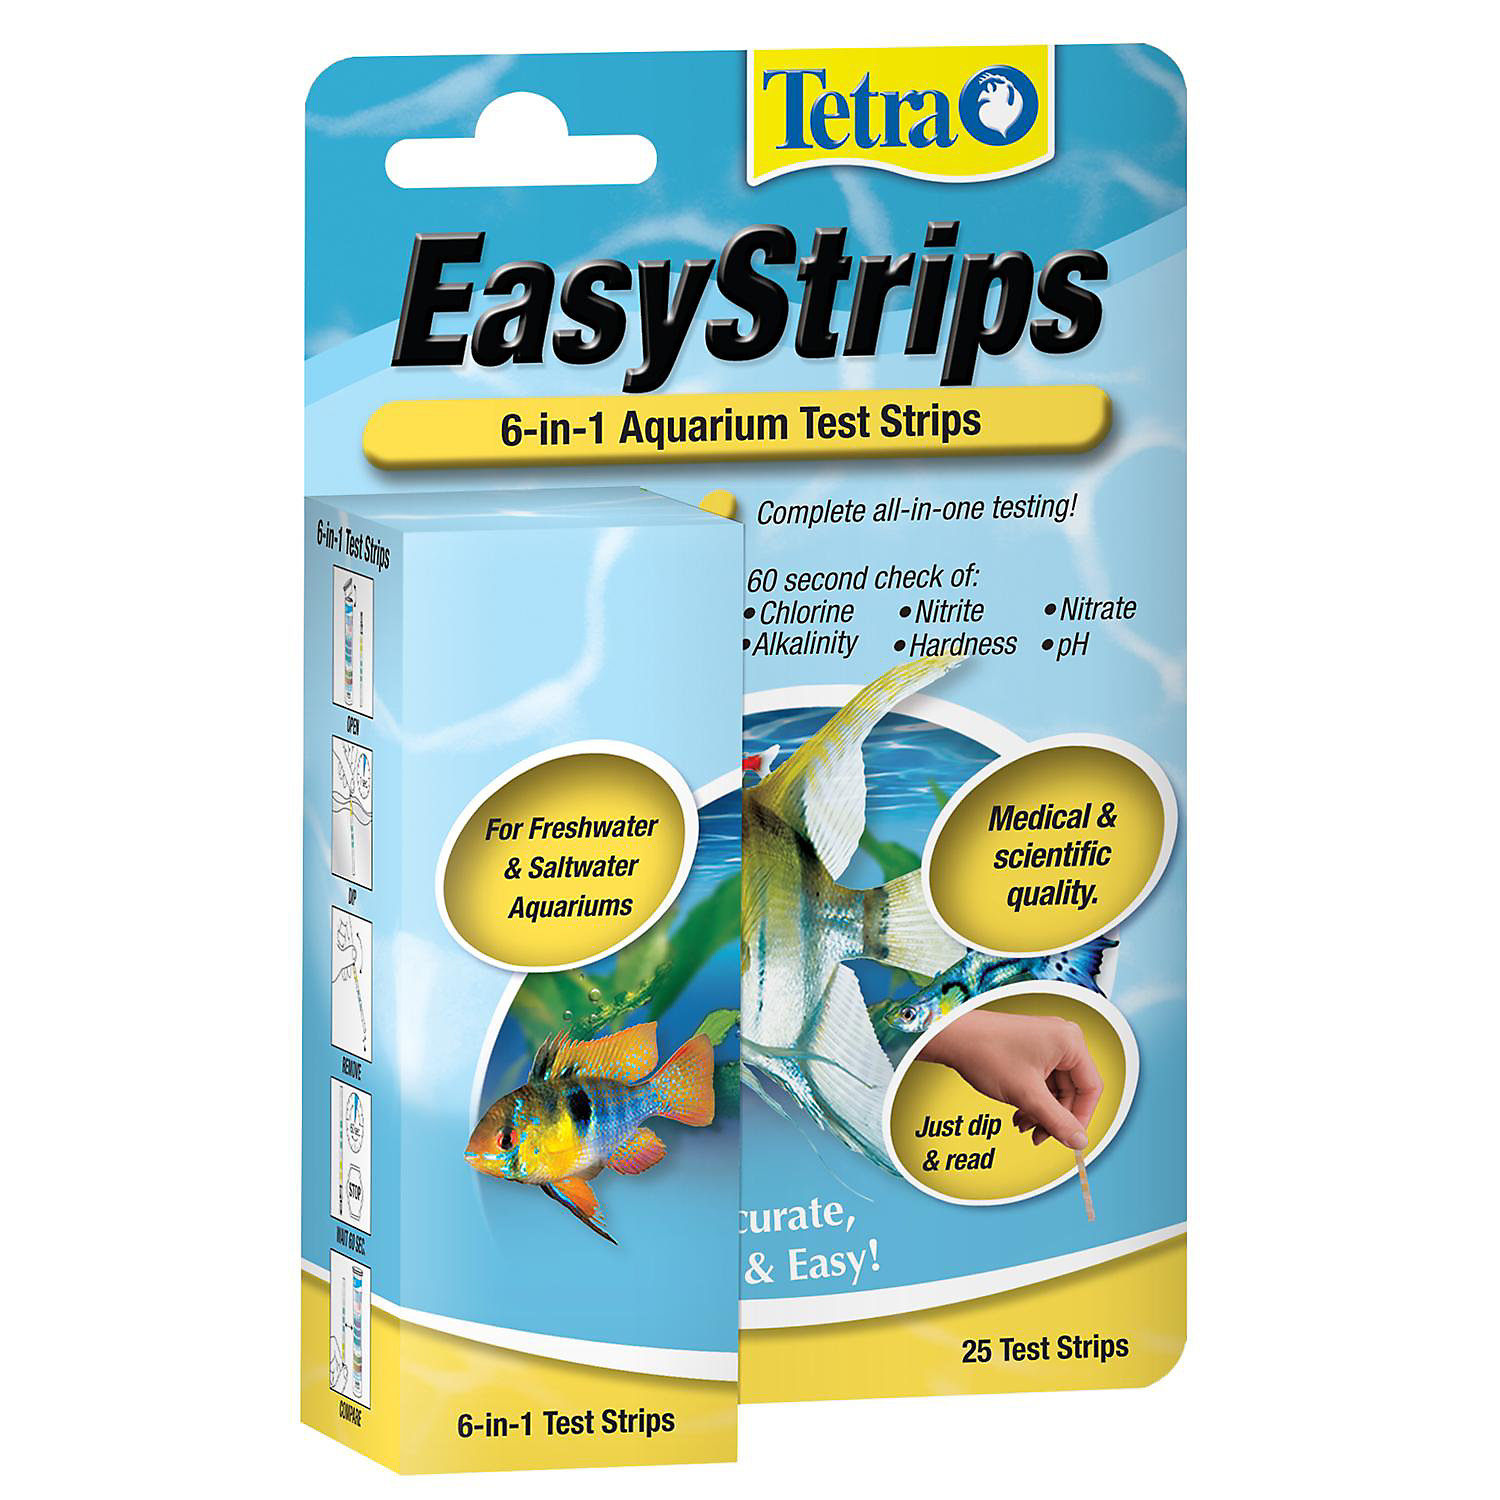 Tetra Easystrips 6 In 1 Aquarium Test Strips Pack Of 25 Test Strips